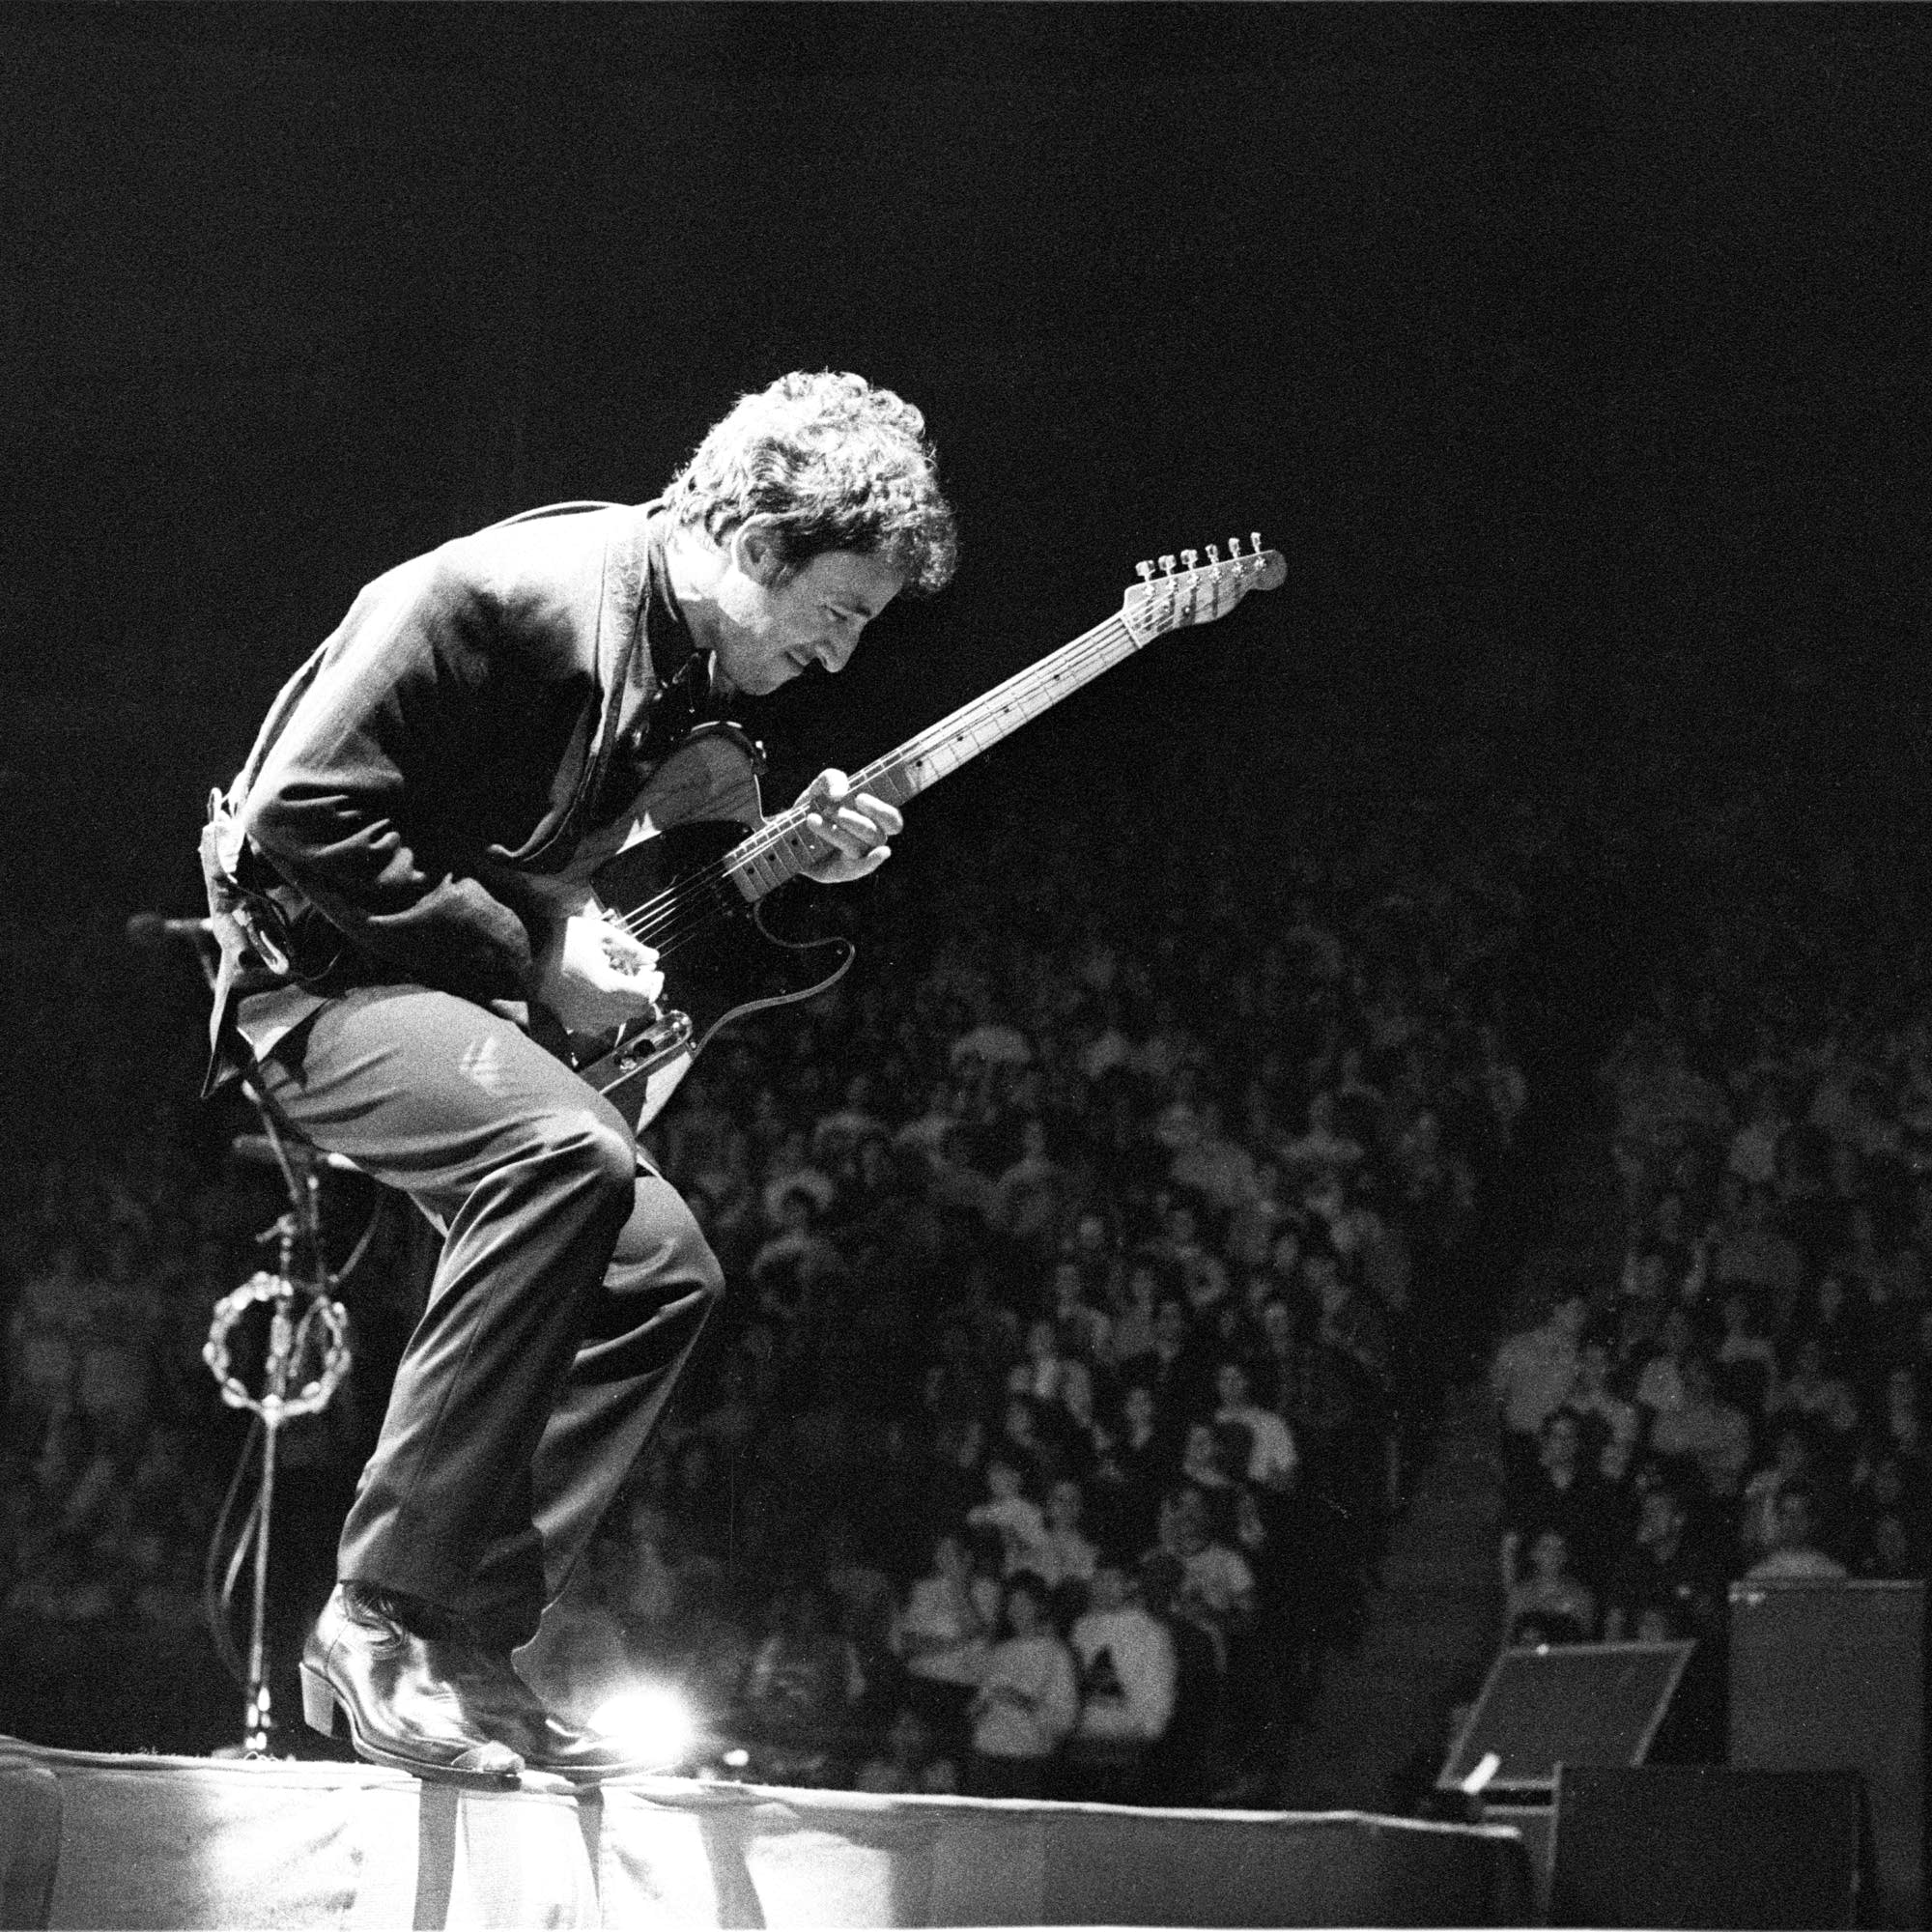 Bruce Springsteen at the Met Center, 1988.